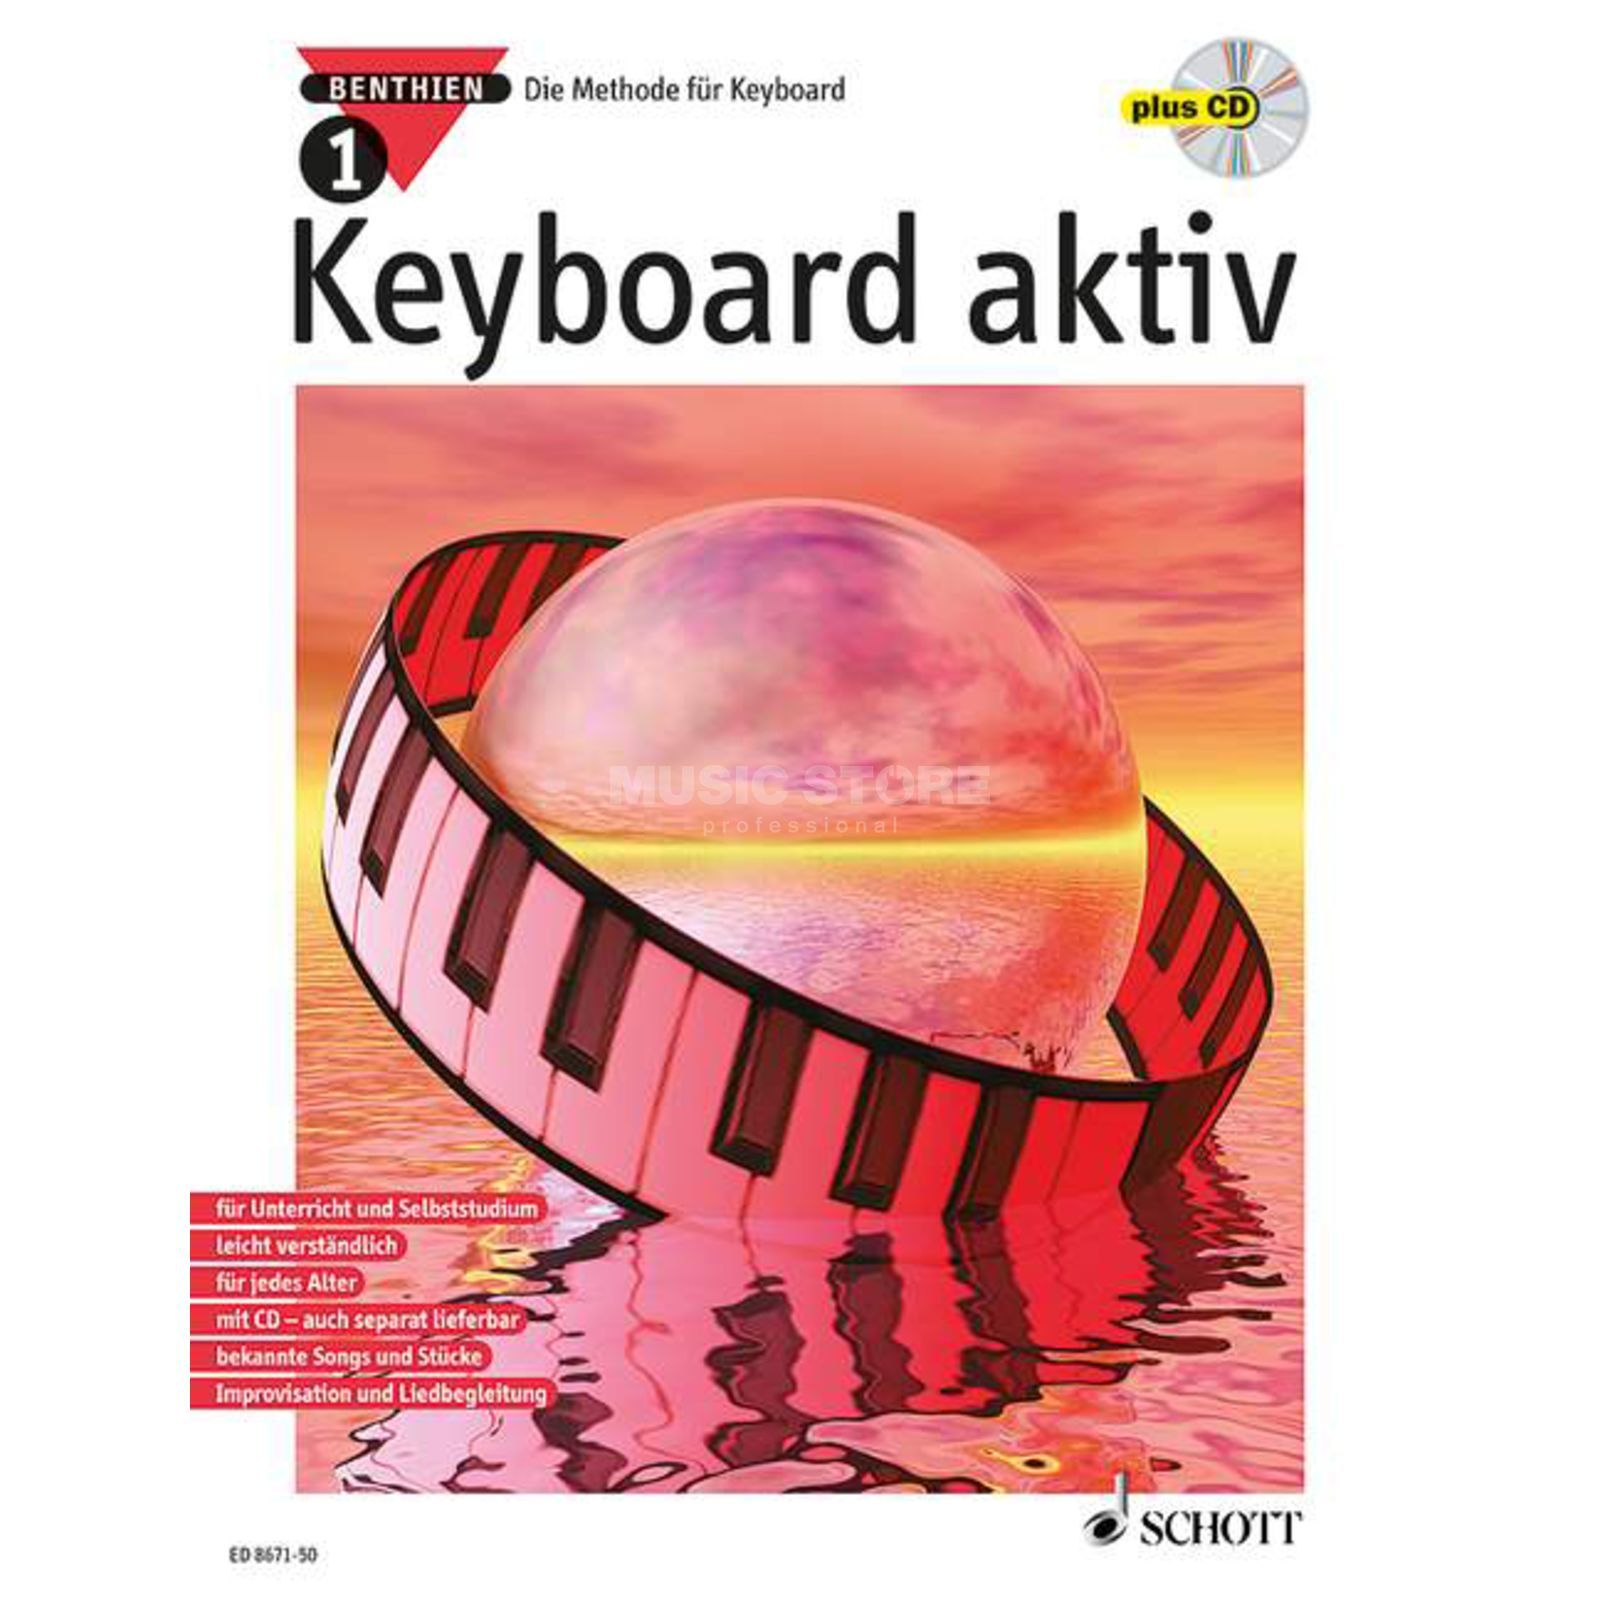 Schott Music Keyboard aktiv Band 1 Axel Benthienm, inkl. CD Produktbild